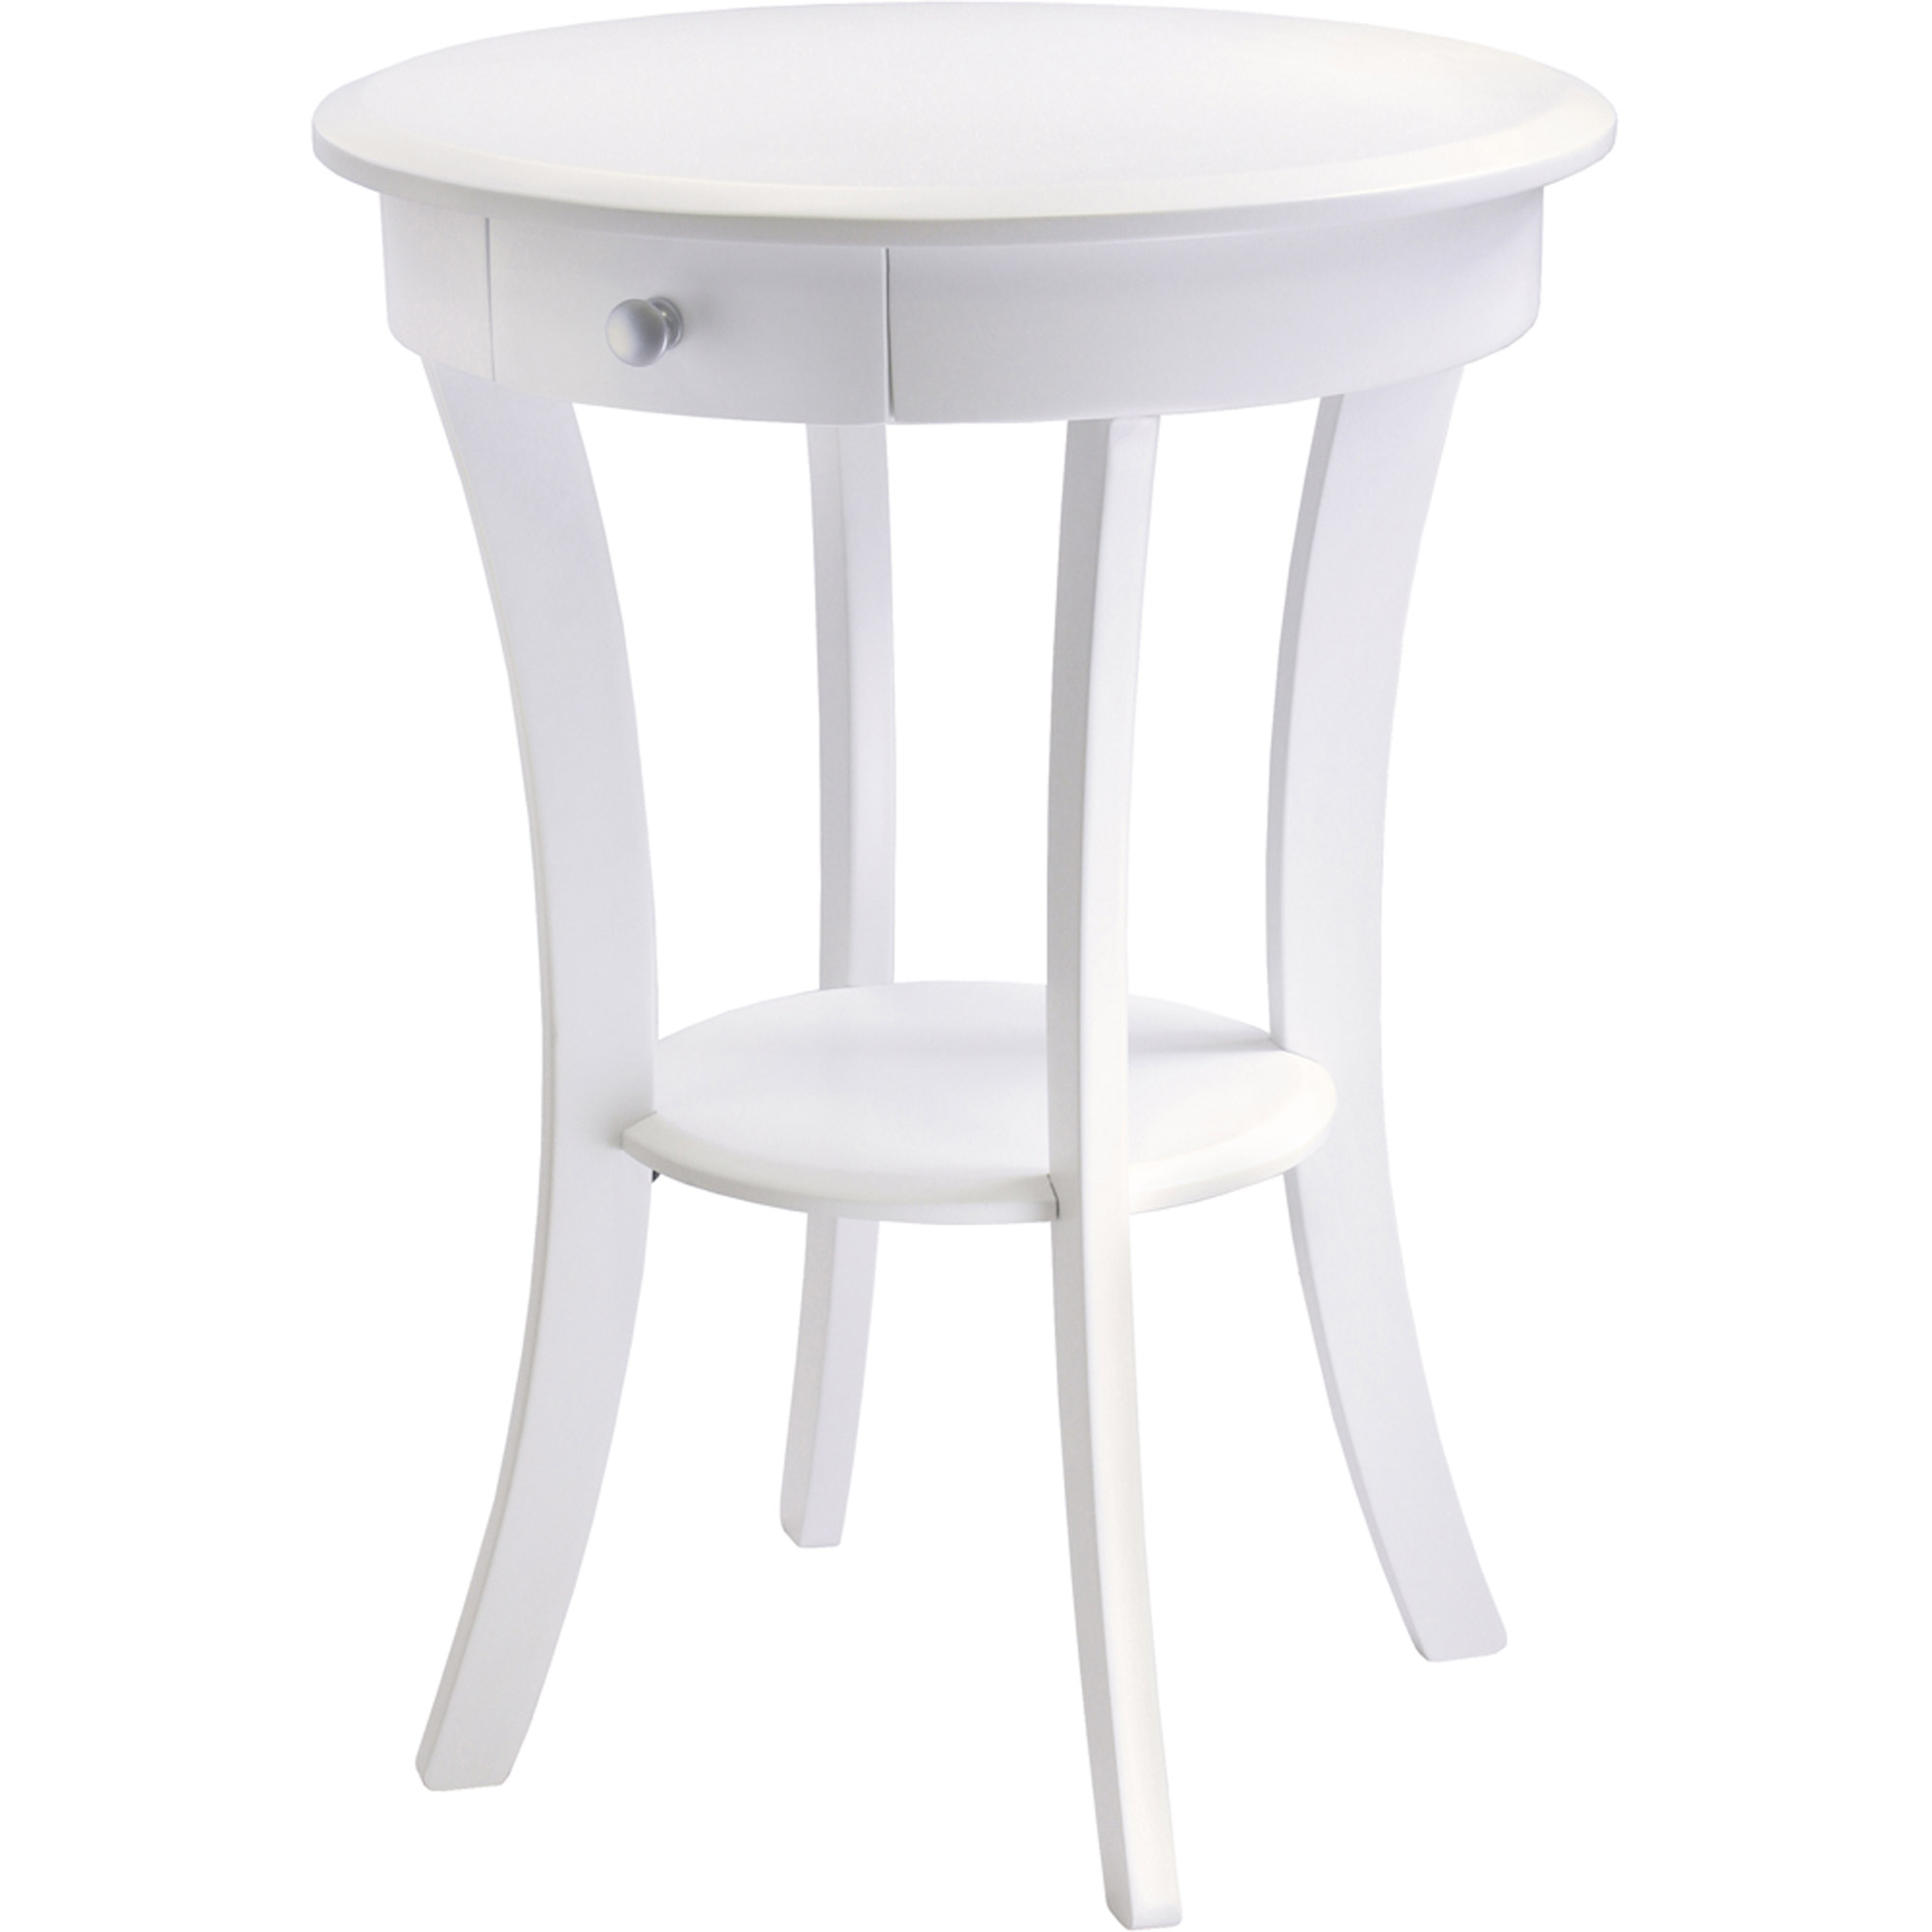 sasha round accent table small tables under chippendale furniture patio dining chairs clearance white with drawers apothecary coffee pottery barn decor high end washers basket